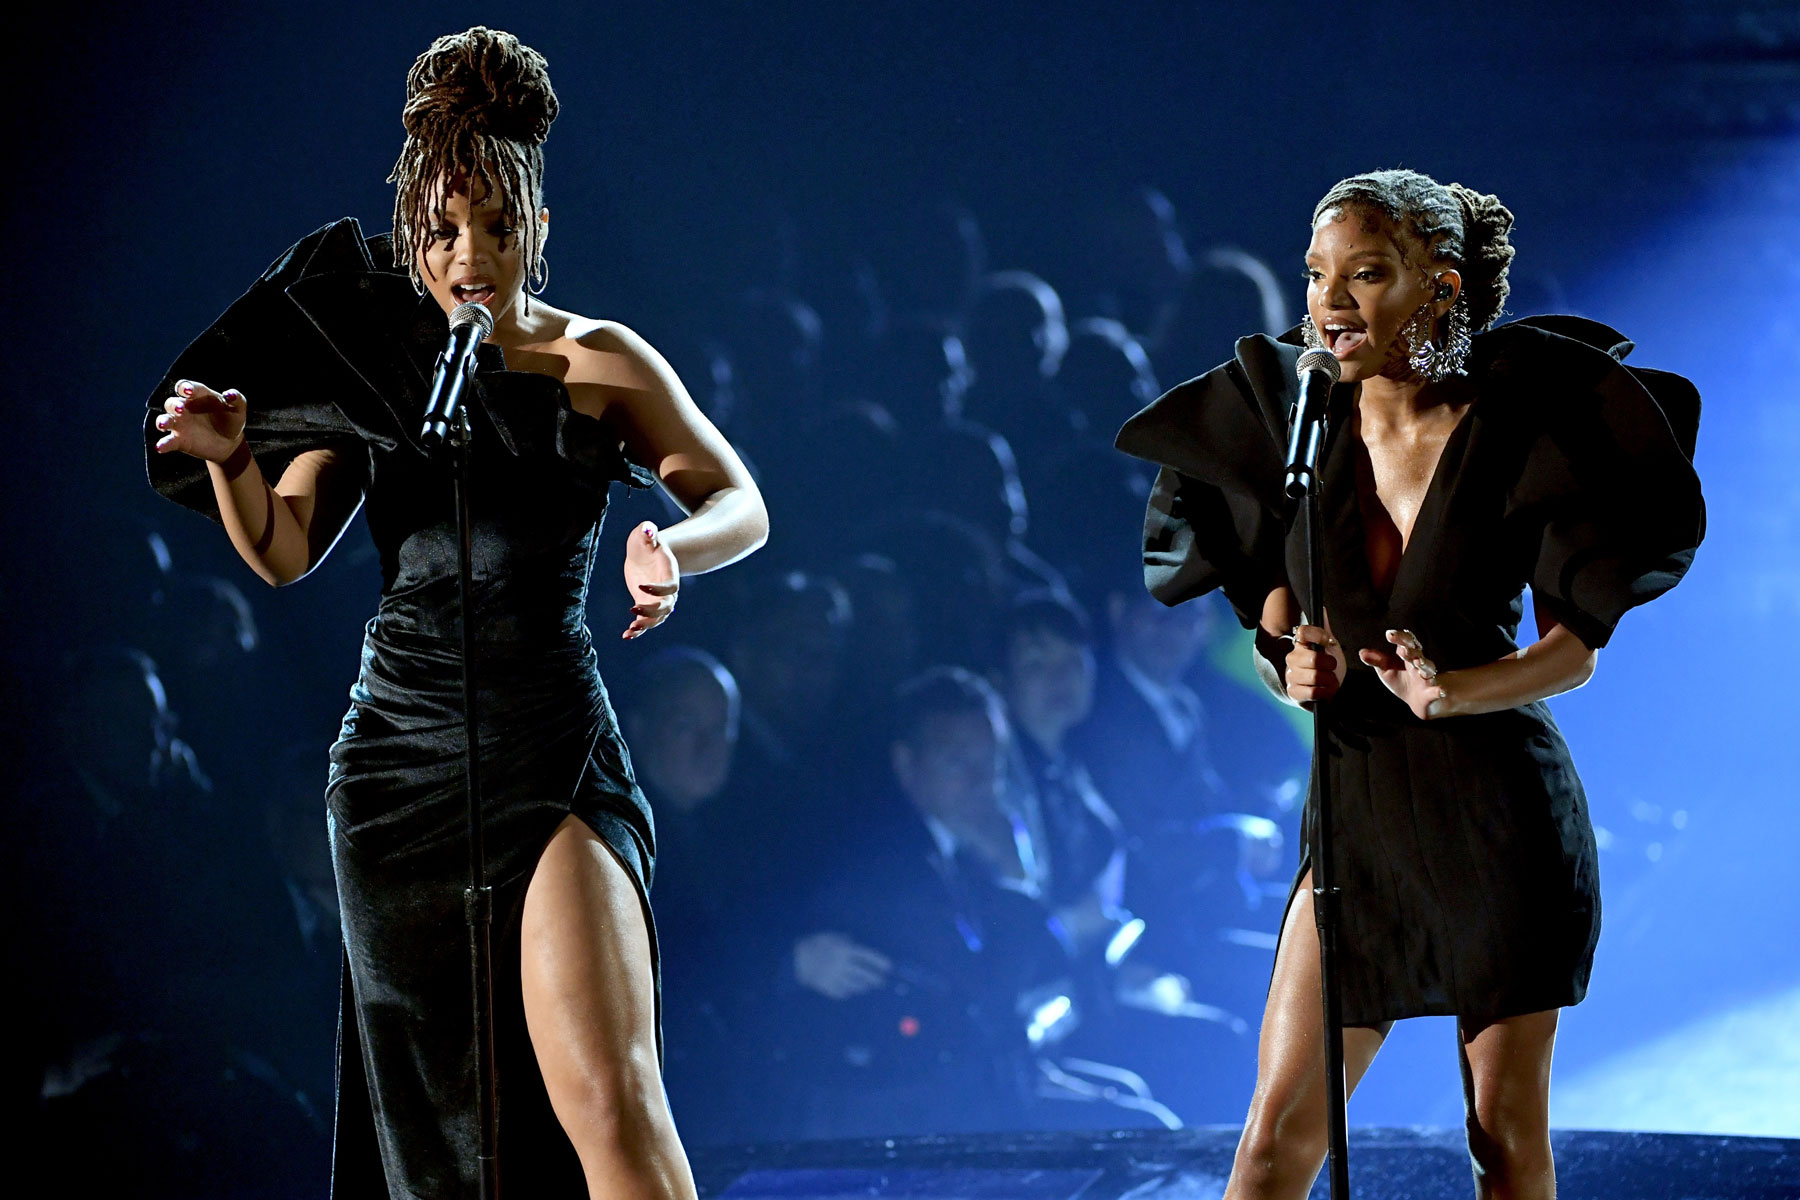 Grammys 2019: Chloe x Halle Pay Tribute to Donny Hathaway, Roberta Flack With 'Where Is the Love' Cover